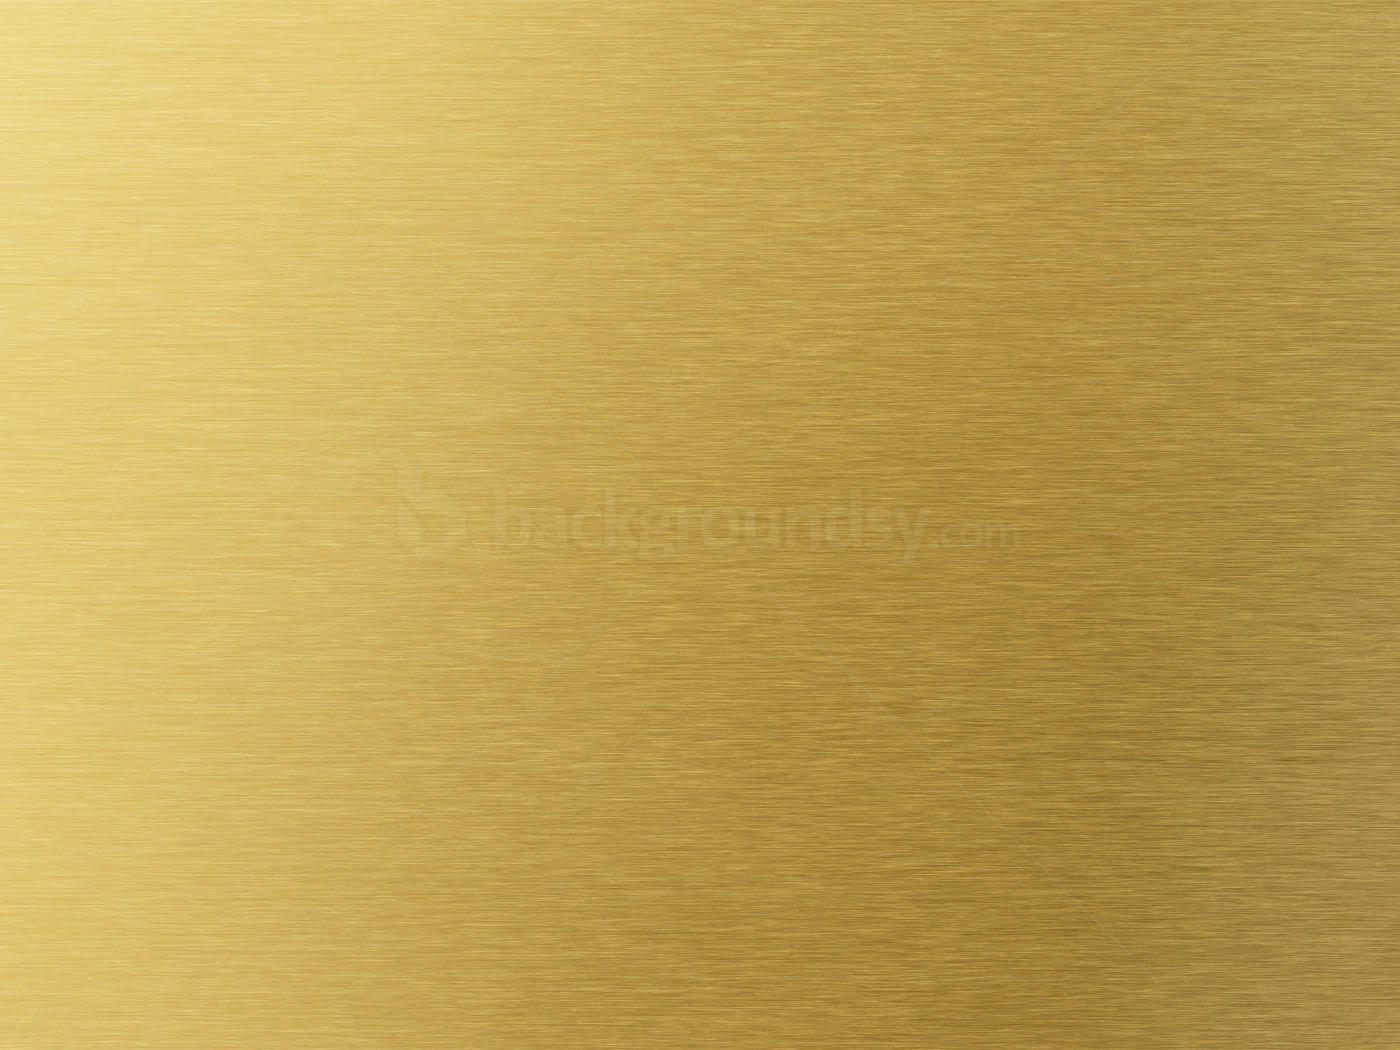 Gold texture | Backgroundsy.com